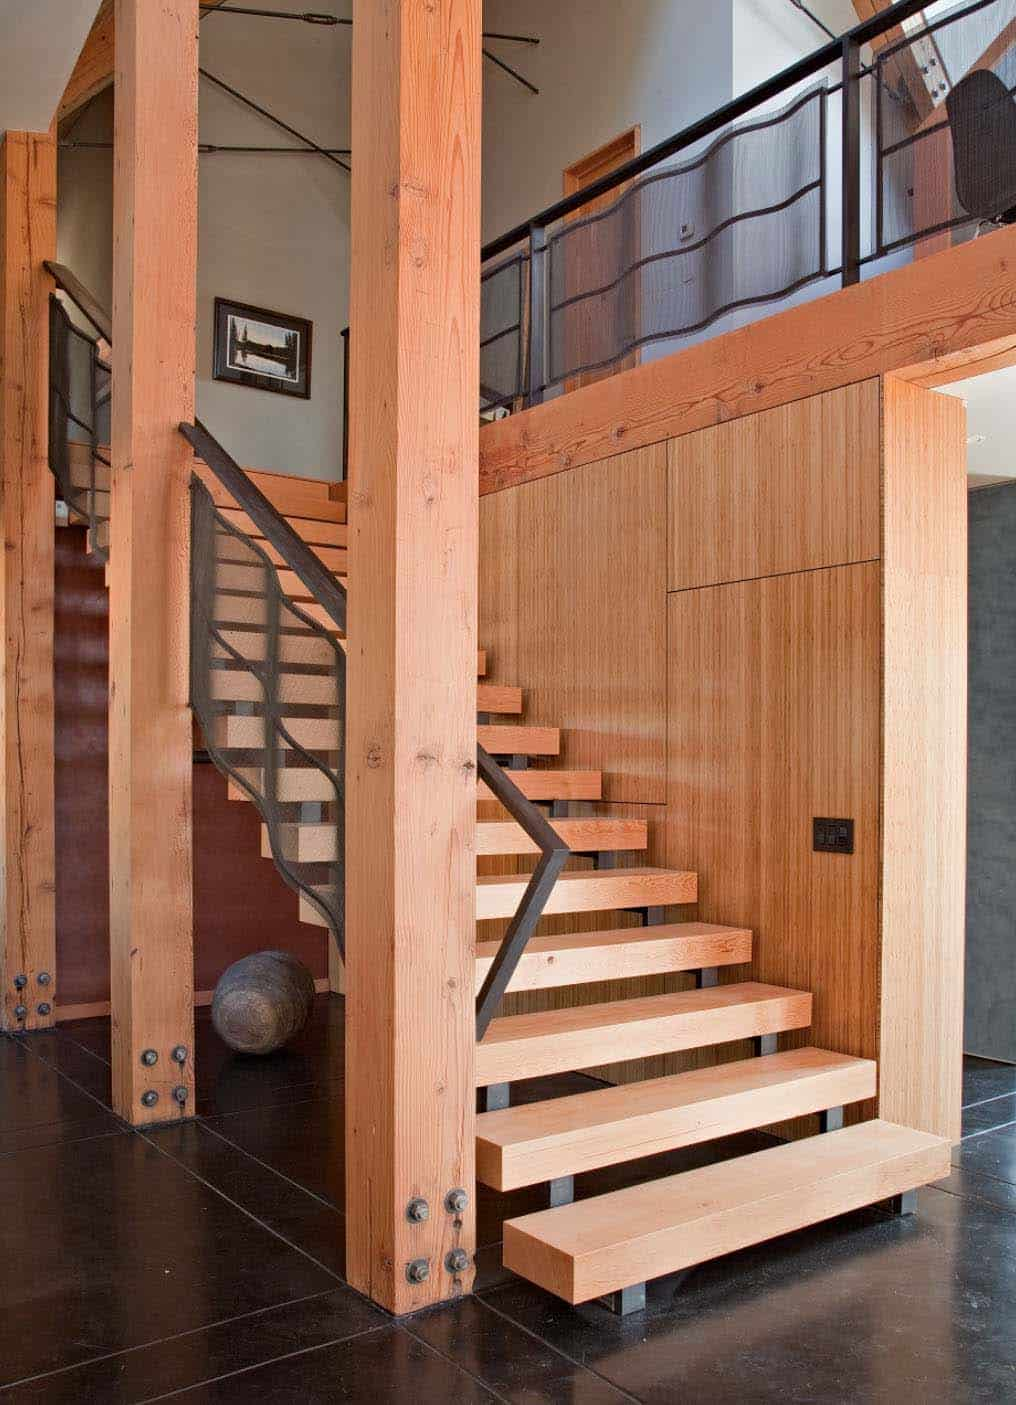 Rustic-Modern-Home-WA Design-14-1 Kindesign